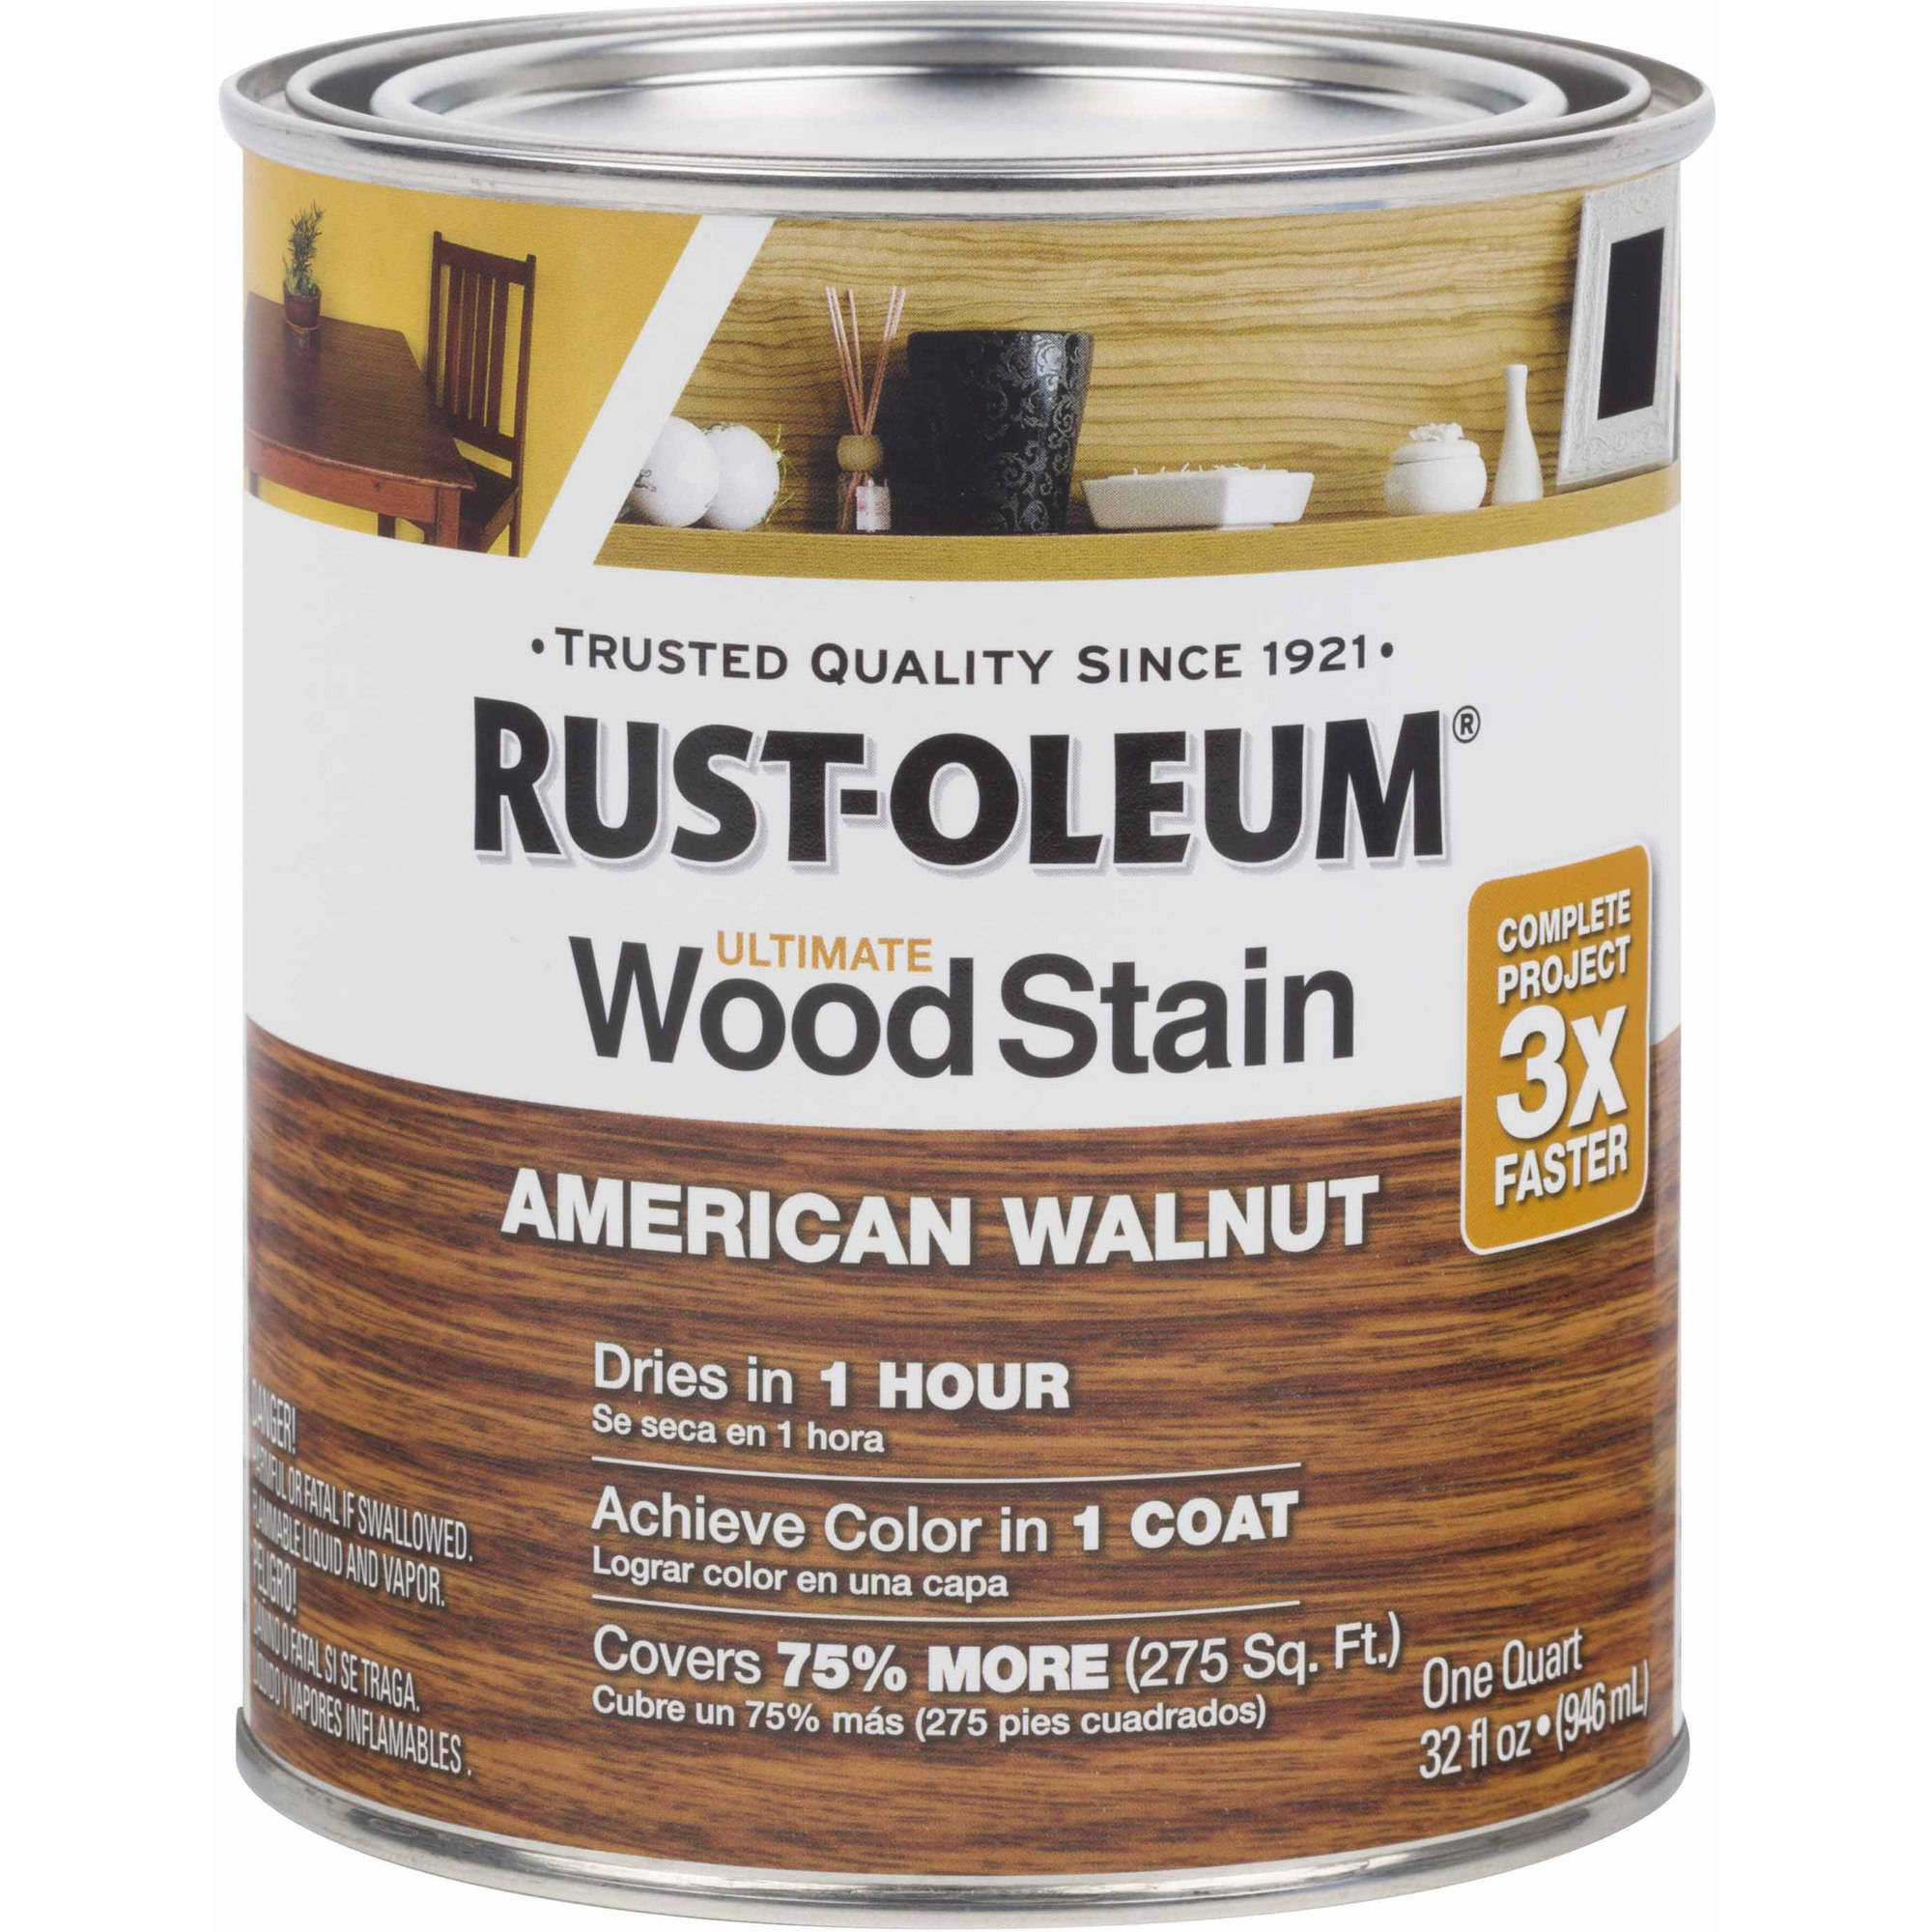 Rust-Oleum Ultimate Wood Stain Quart, American Walnut